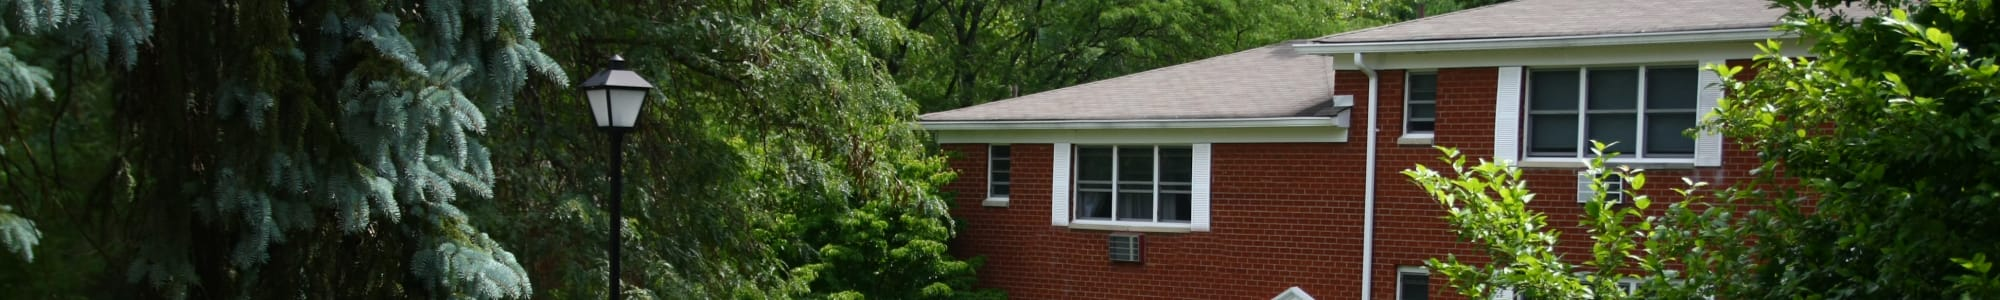 Affordable 1 2 bedroom apartments in randolph nj - One bedroom apartments in new jersey ...